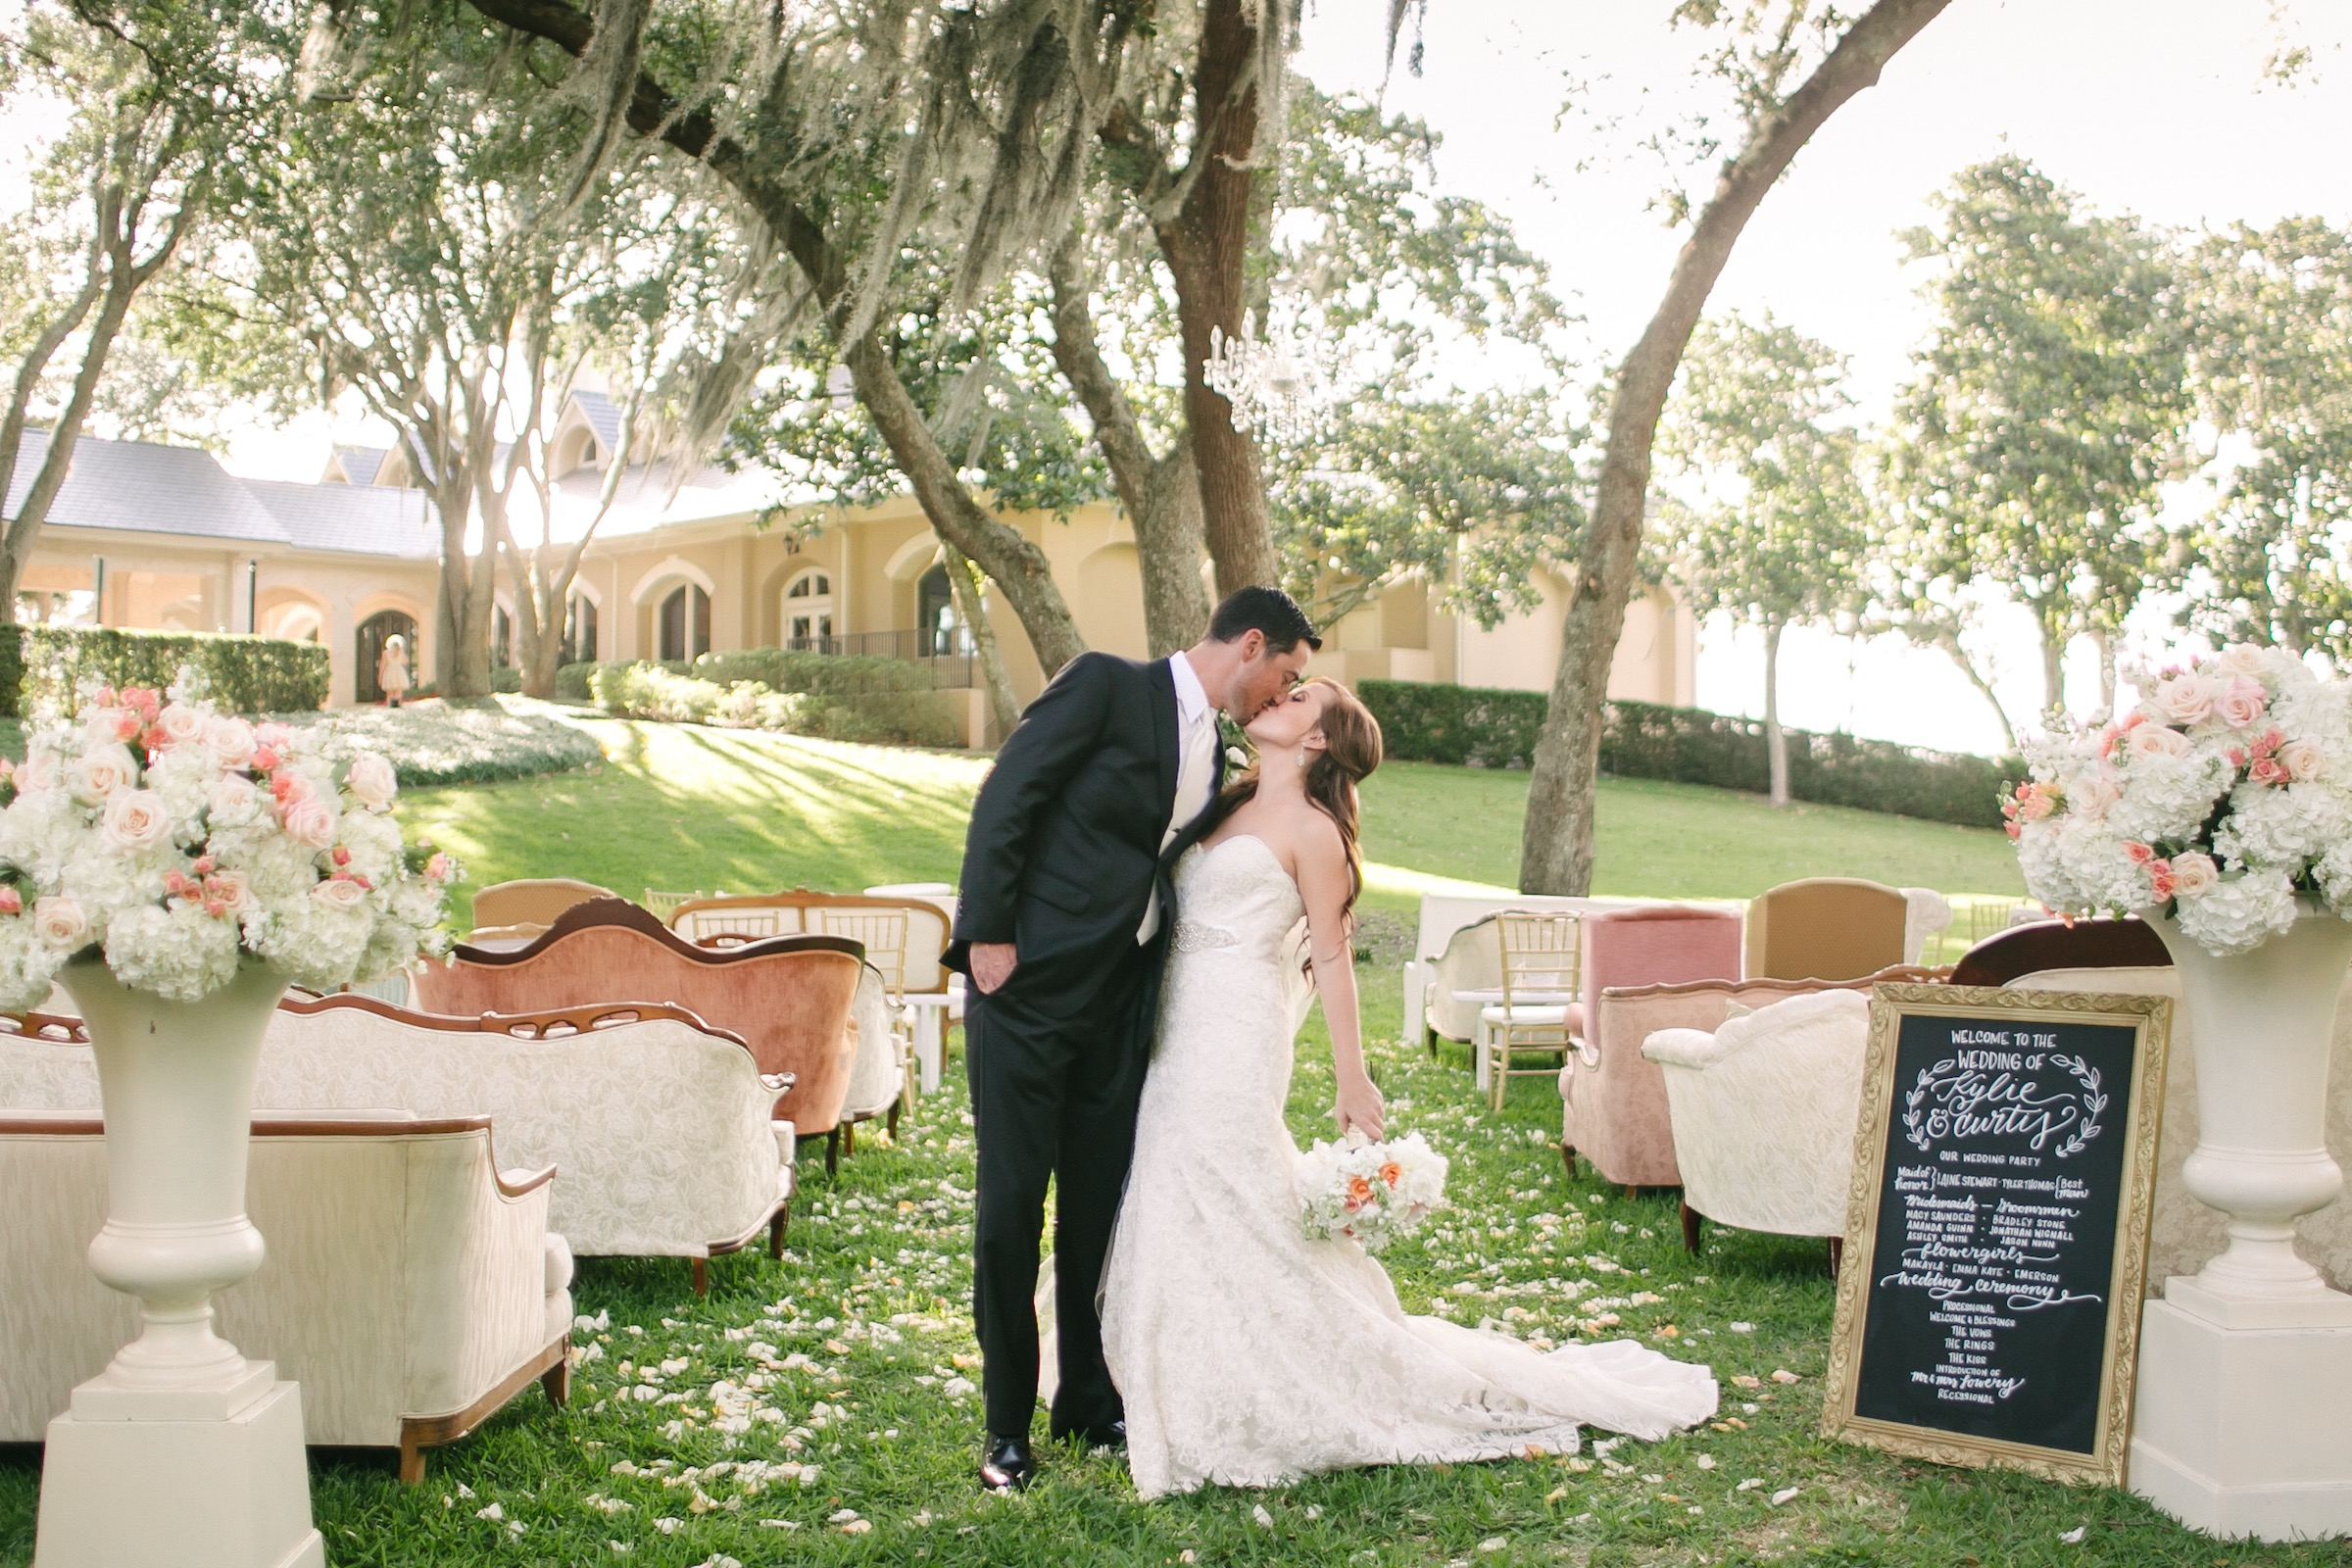 ponte vedra muslim single women Check out the best offer from best bets photos - wedding photographers in ponte vedra beach for free in weddingcom.